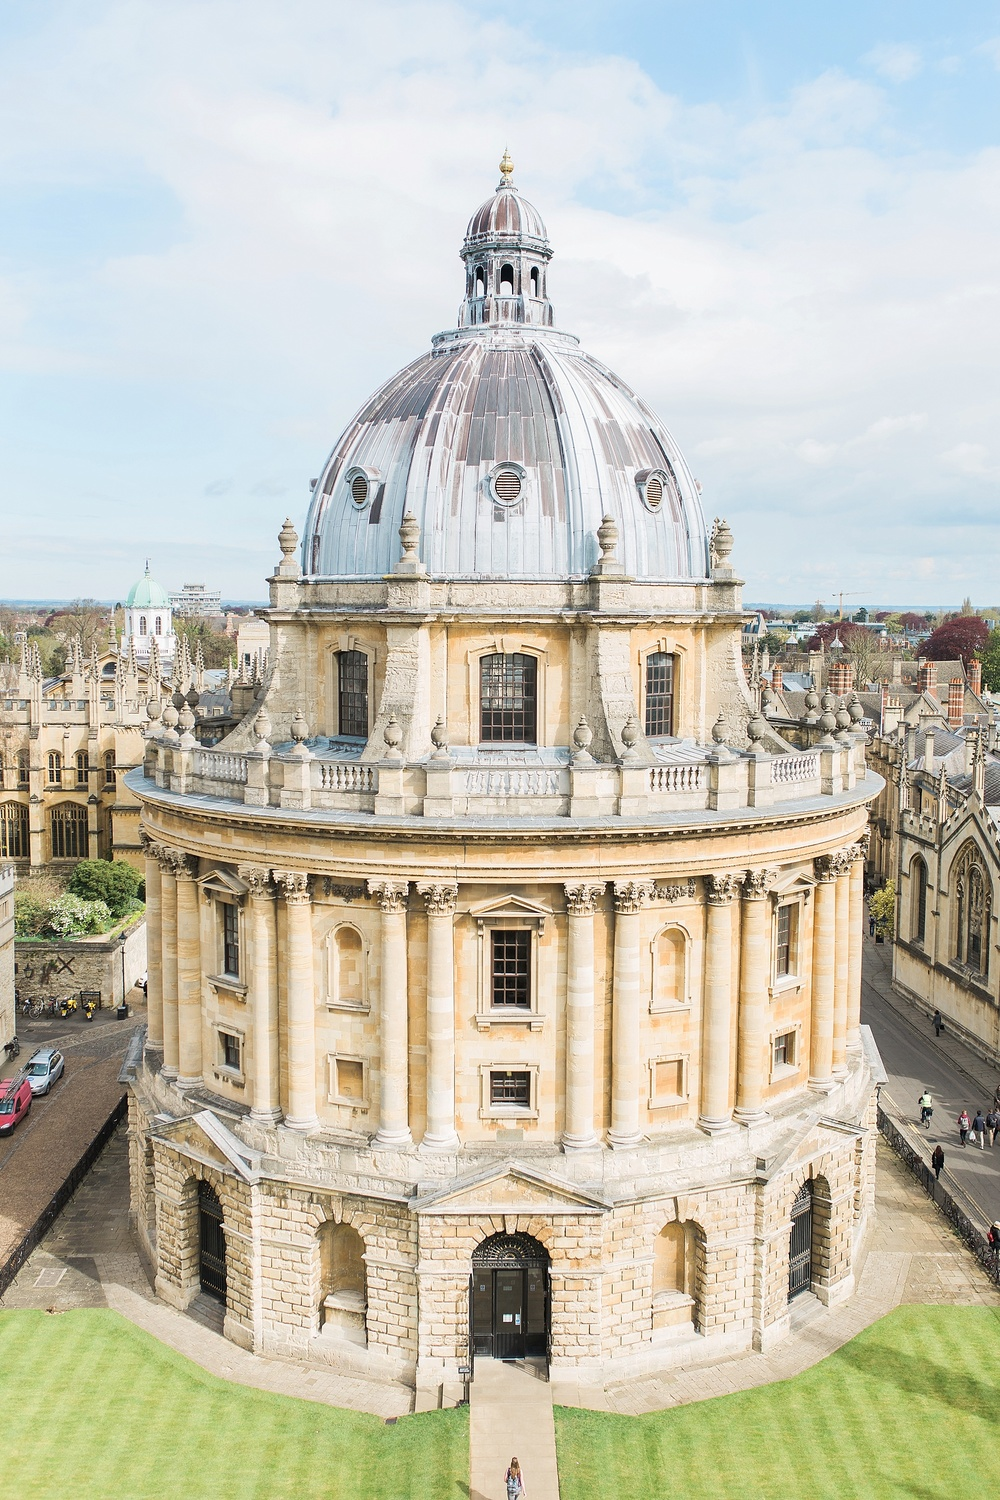 We went to the top of the tower at the University Church to get a view of the city and it was totally worth it! I love this shot of the Bodleian Library!